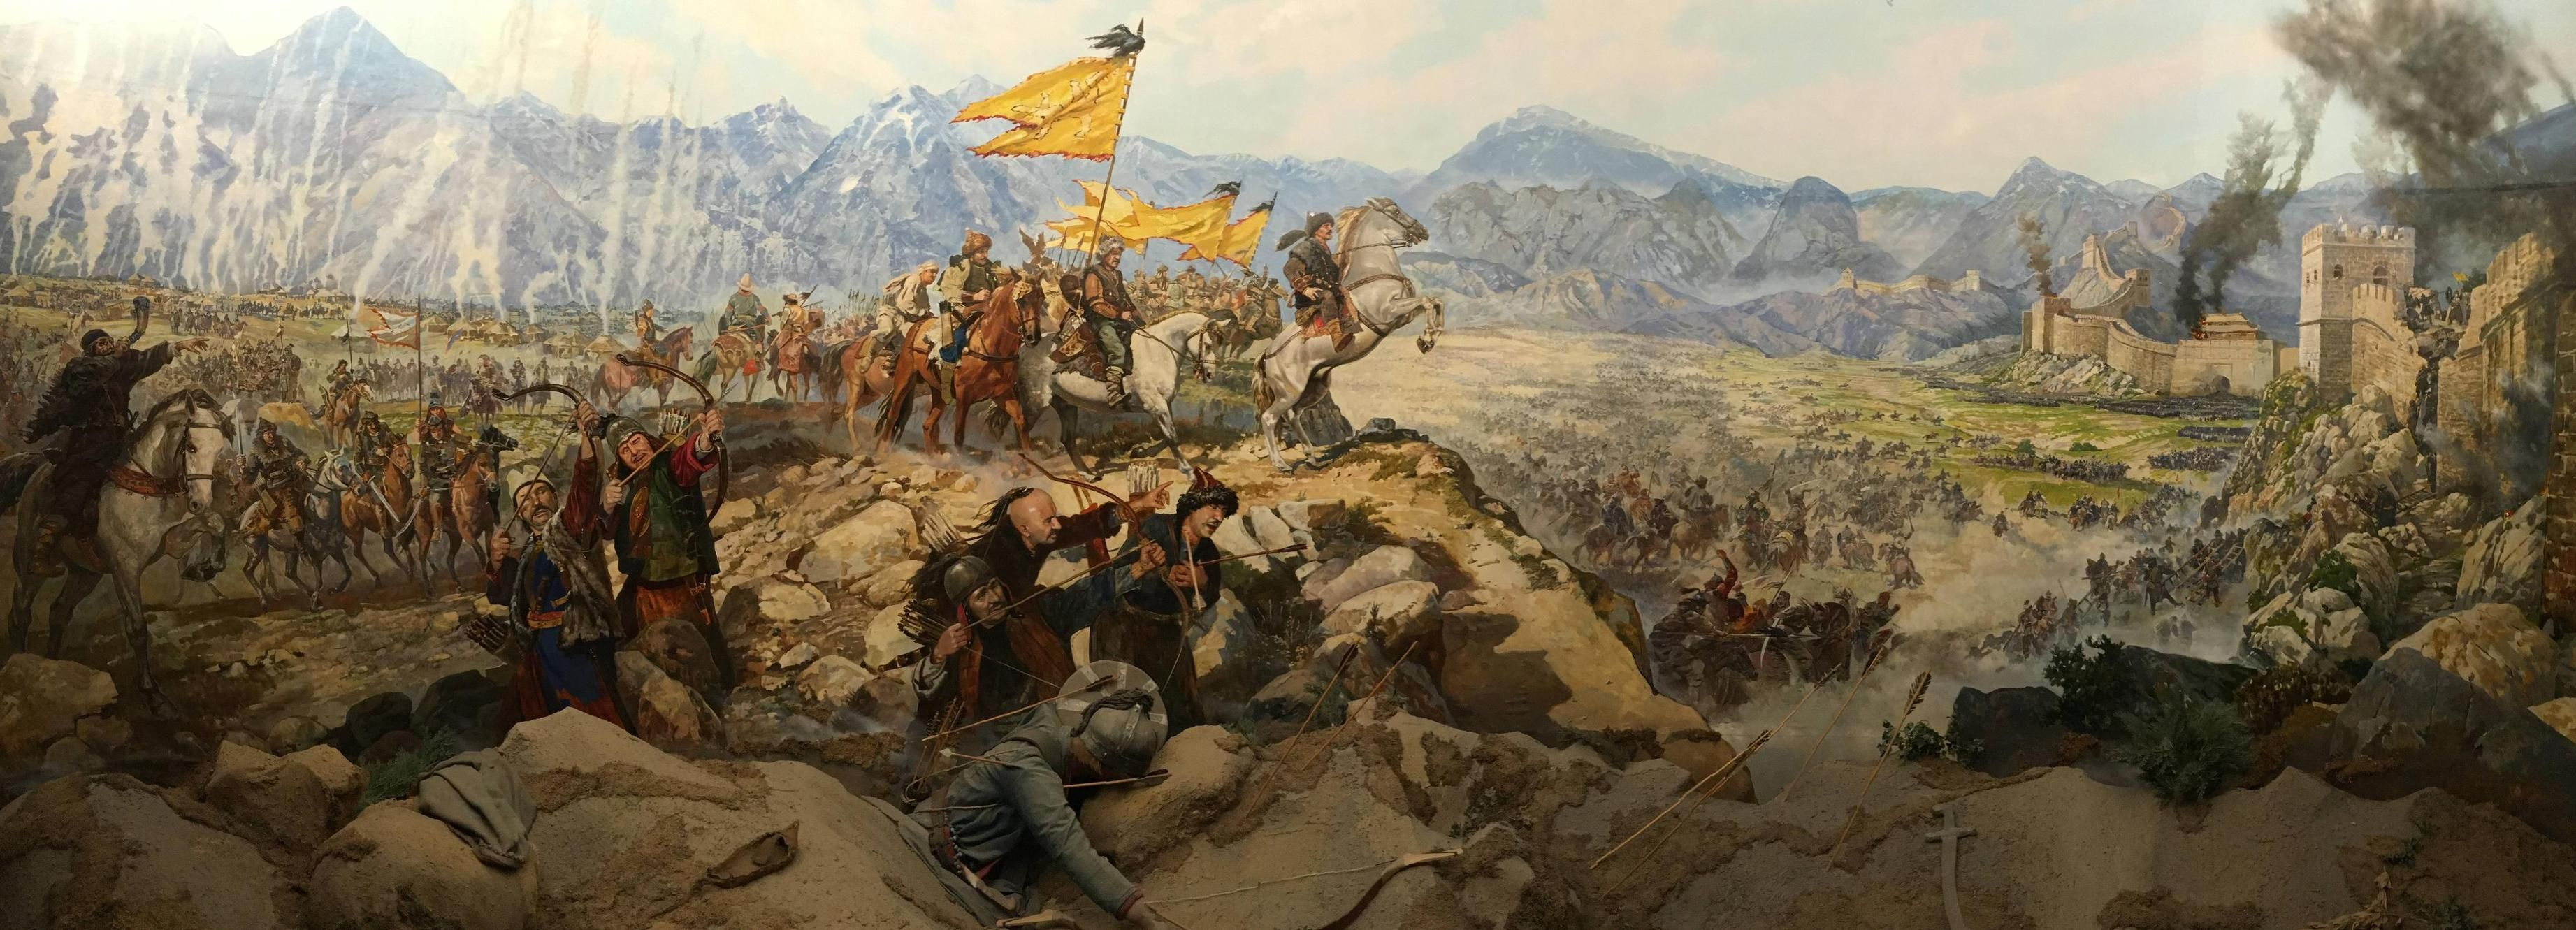 Attack At Chinese Wall By Xiongnu Unknown Artist Istanbul Military Museum 3686x1331 R Battlepaintings Chinese Wall Military Museum Chinese History